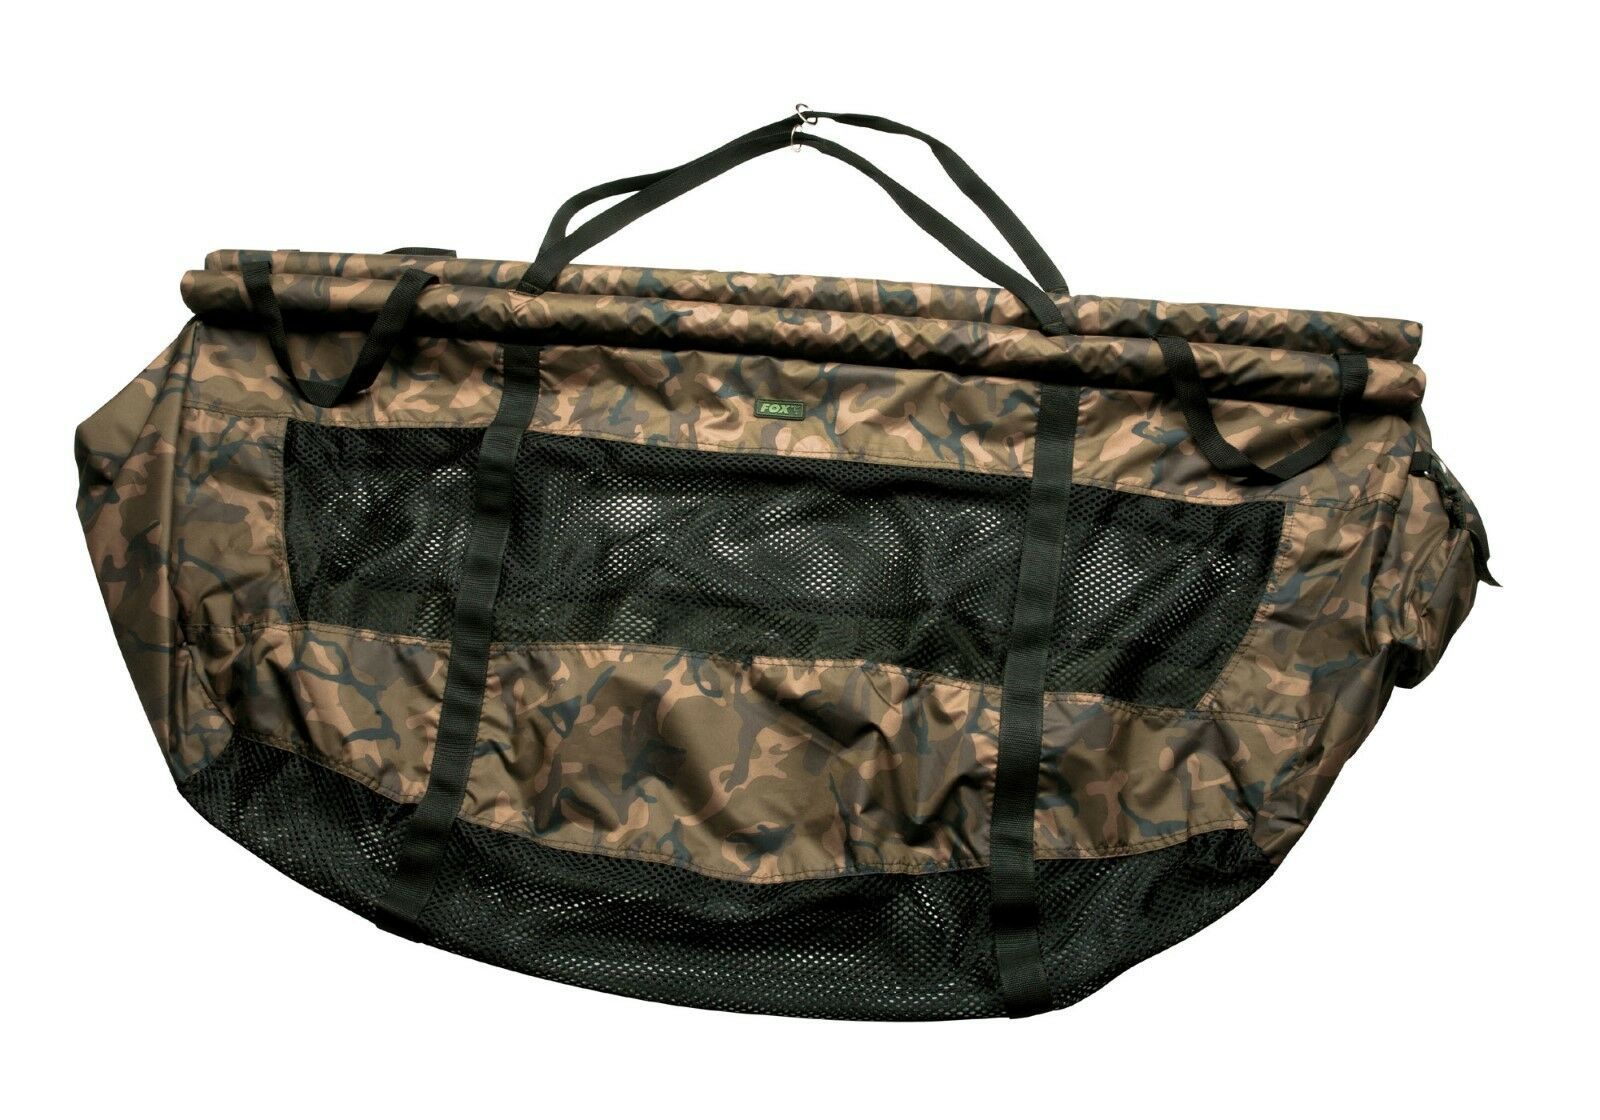 FOX STR Floatation Weigh Sling Safety CAMO Carp Fishing  - CCC035